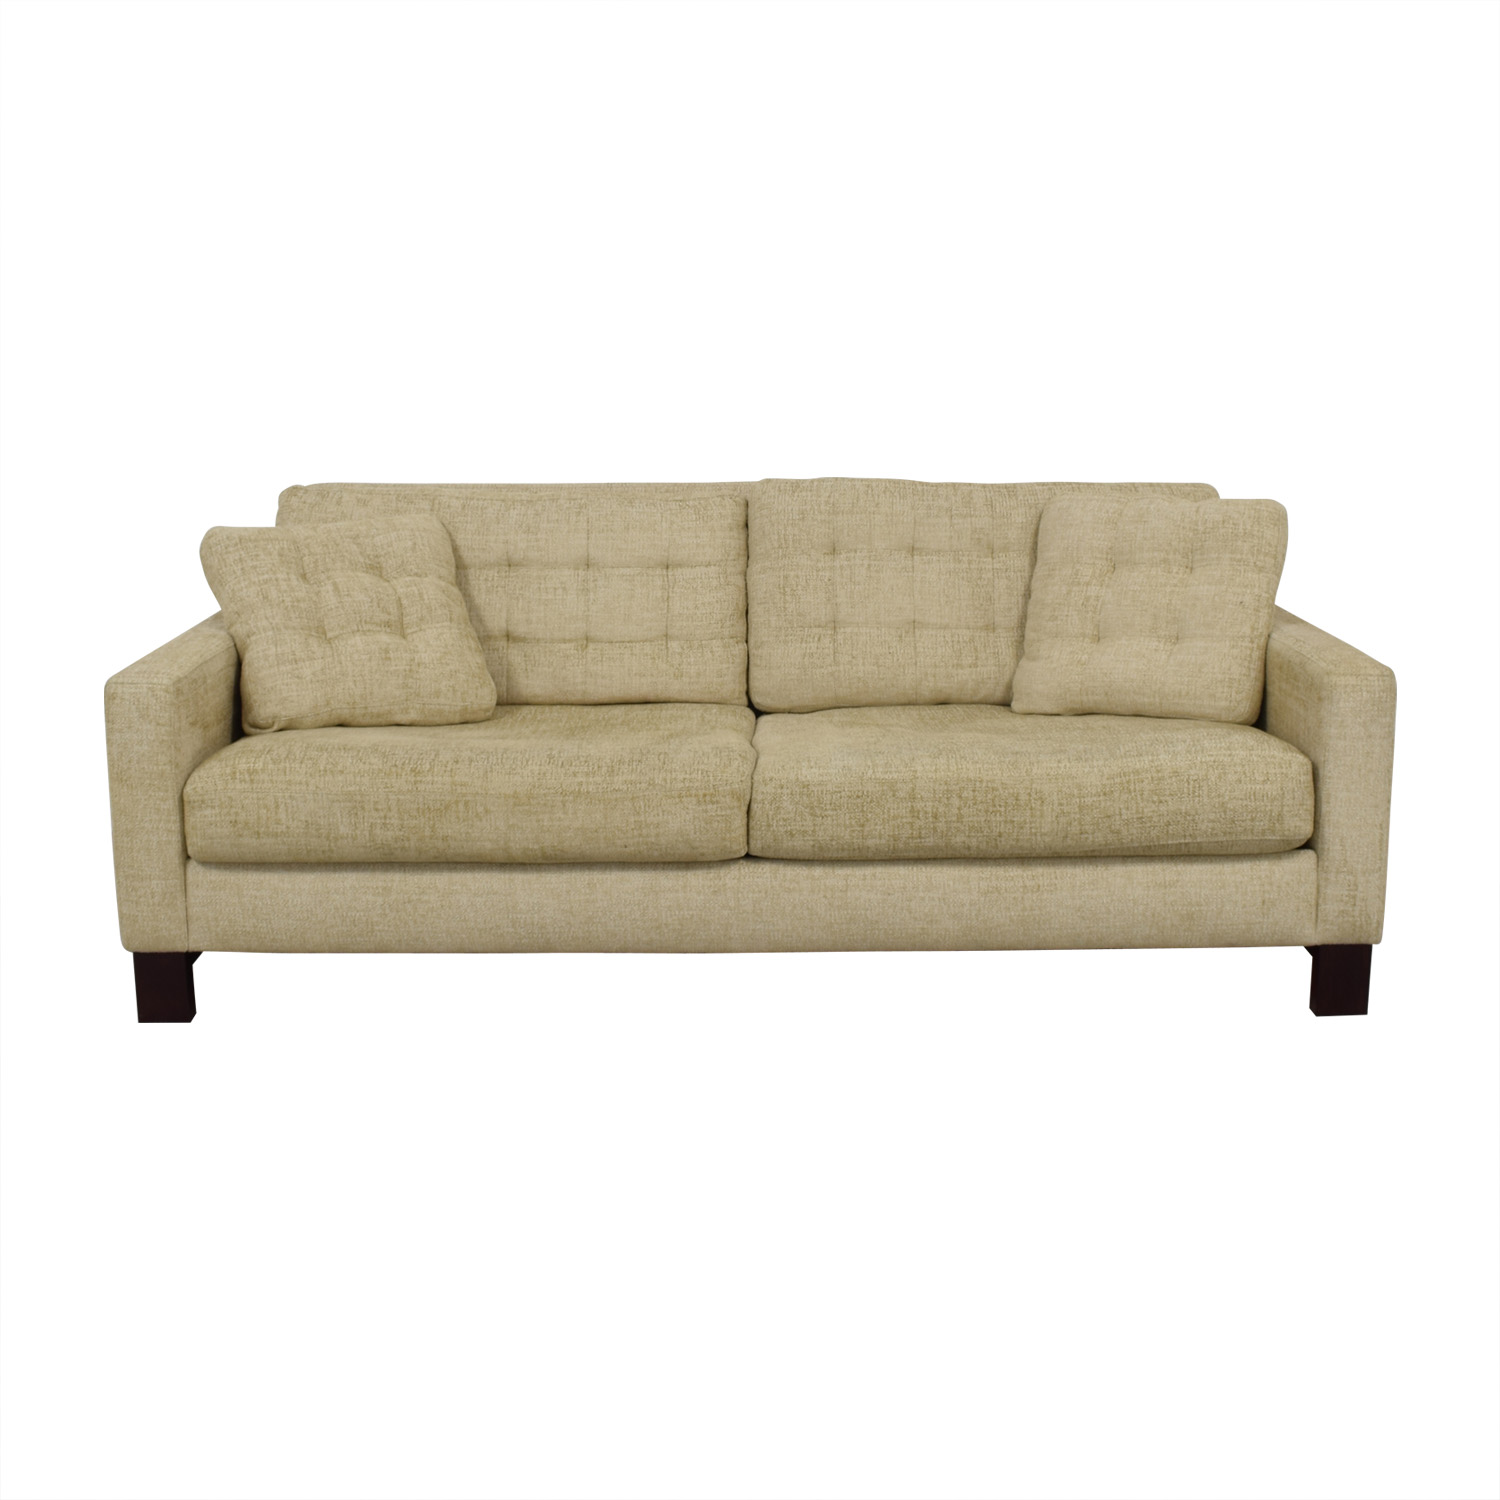 shop American Leather Beige Tweed Two-Cushion Sofa American Leather Sofas